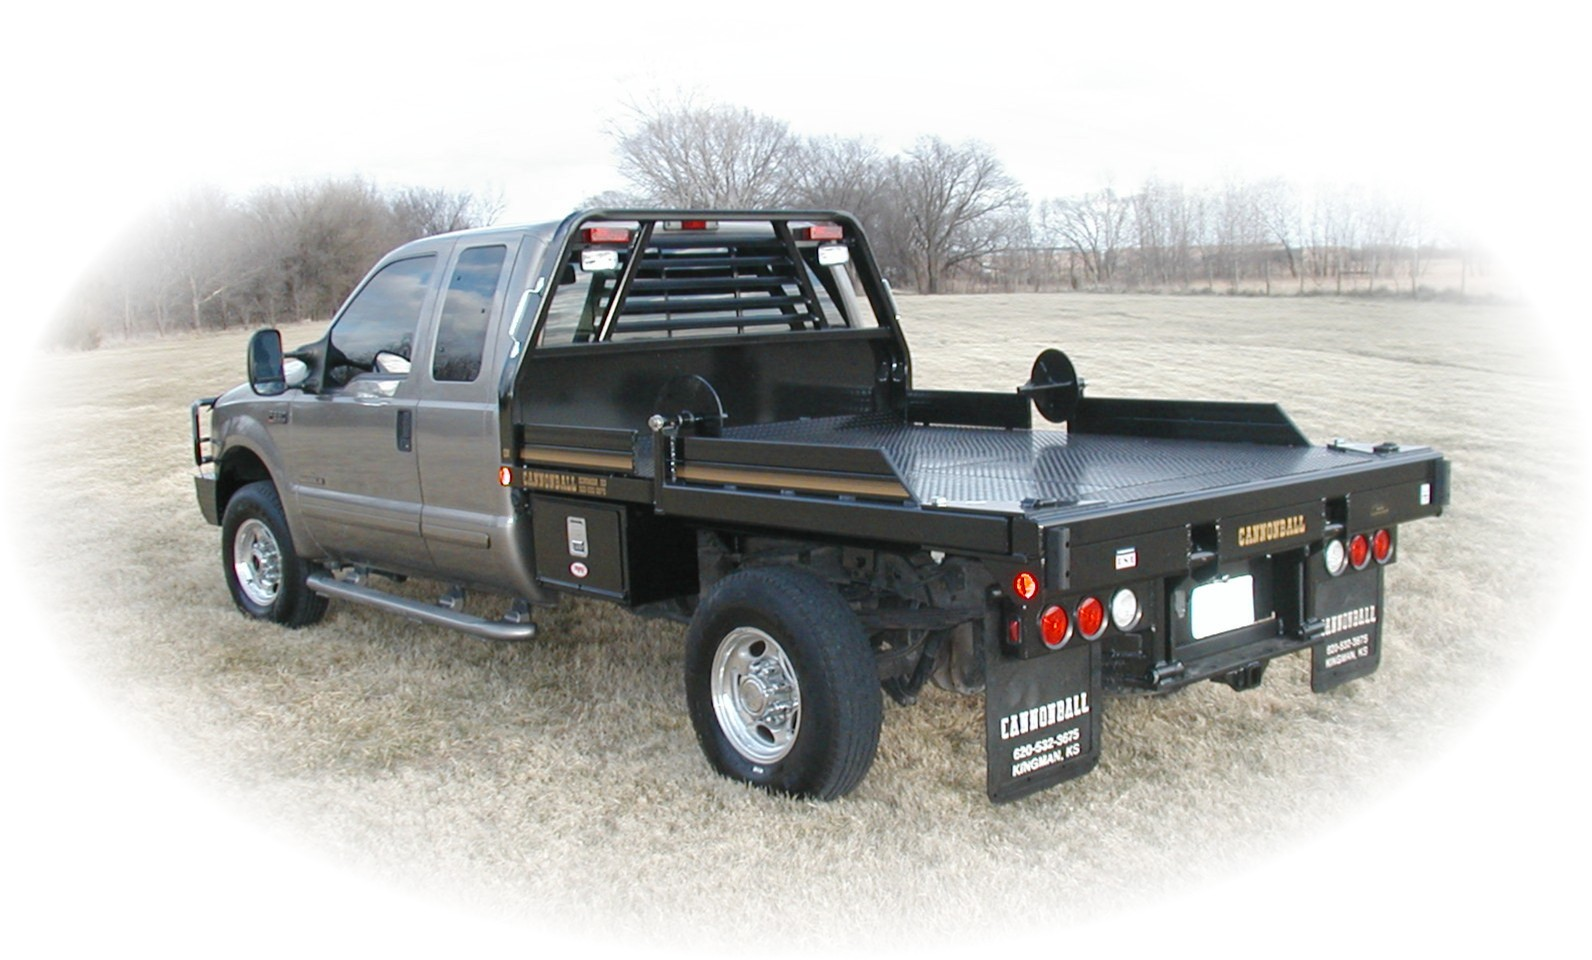 Aftermarket Truck Beds 28 Images Truck Beds Chevy